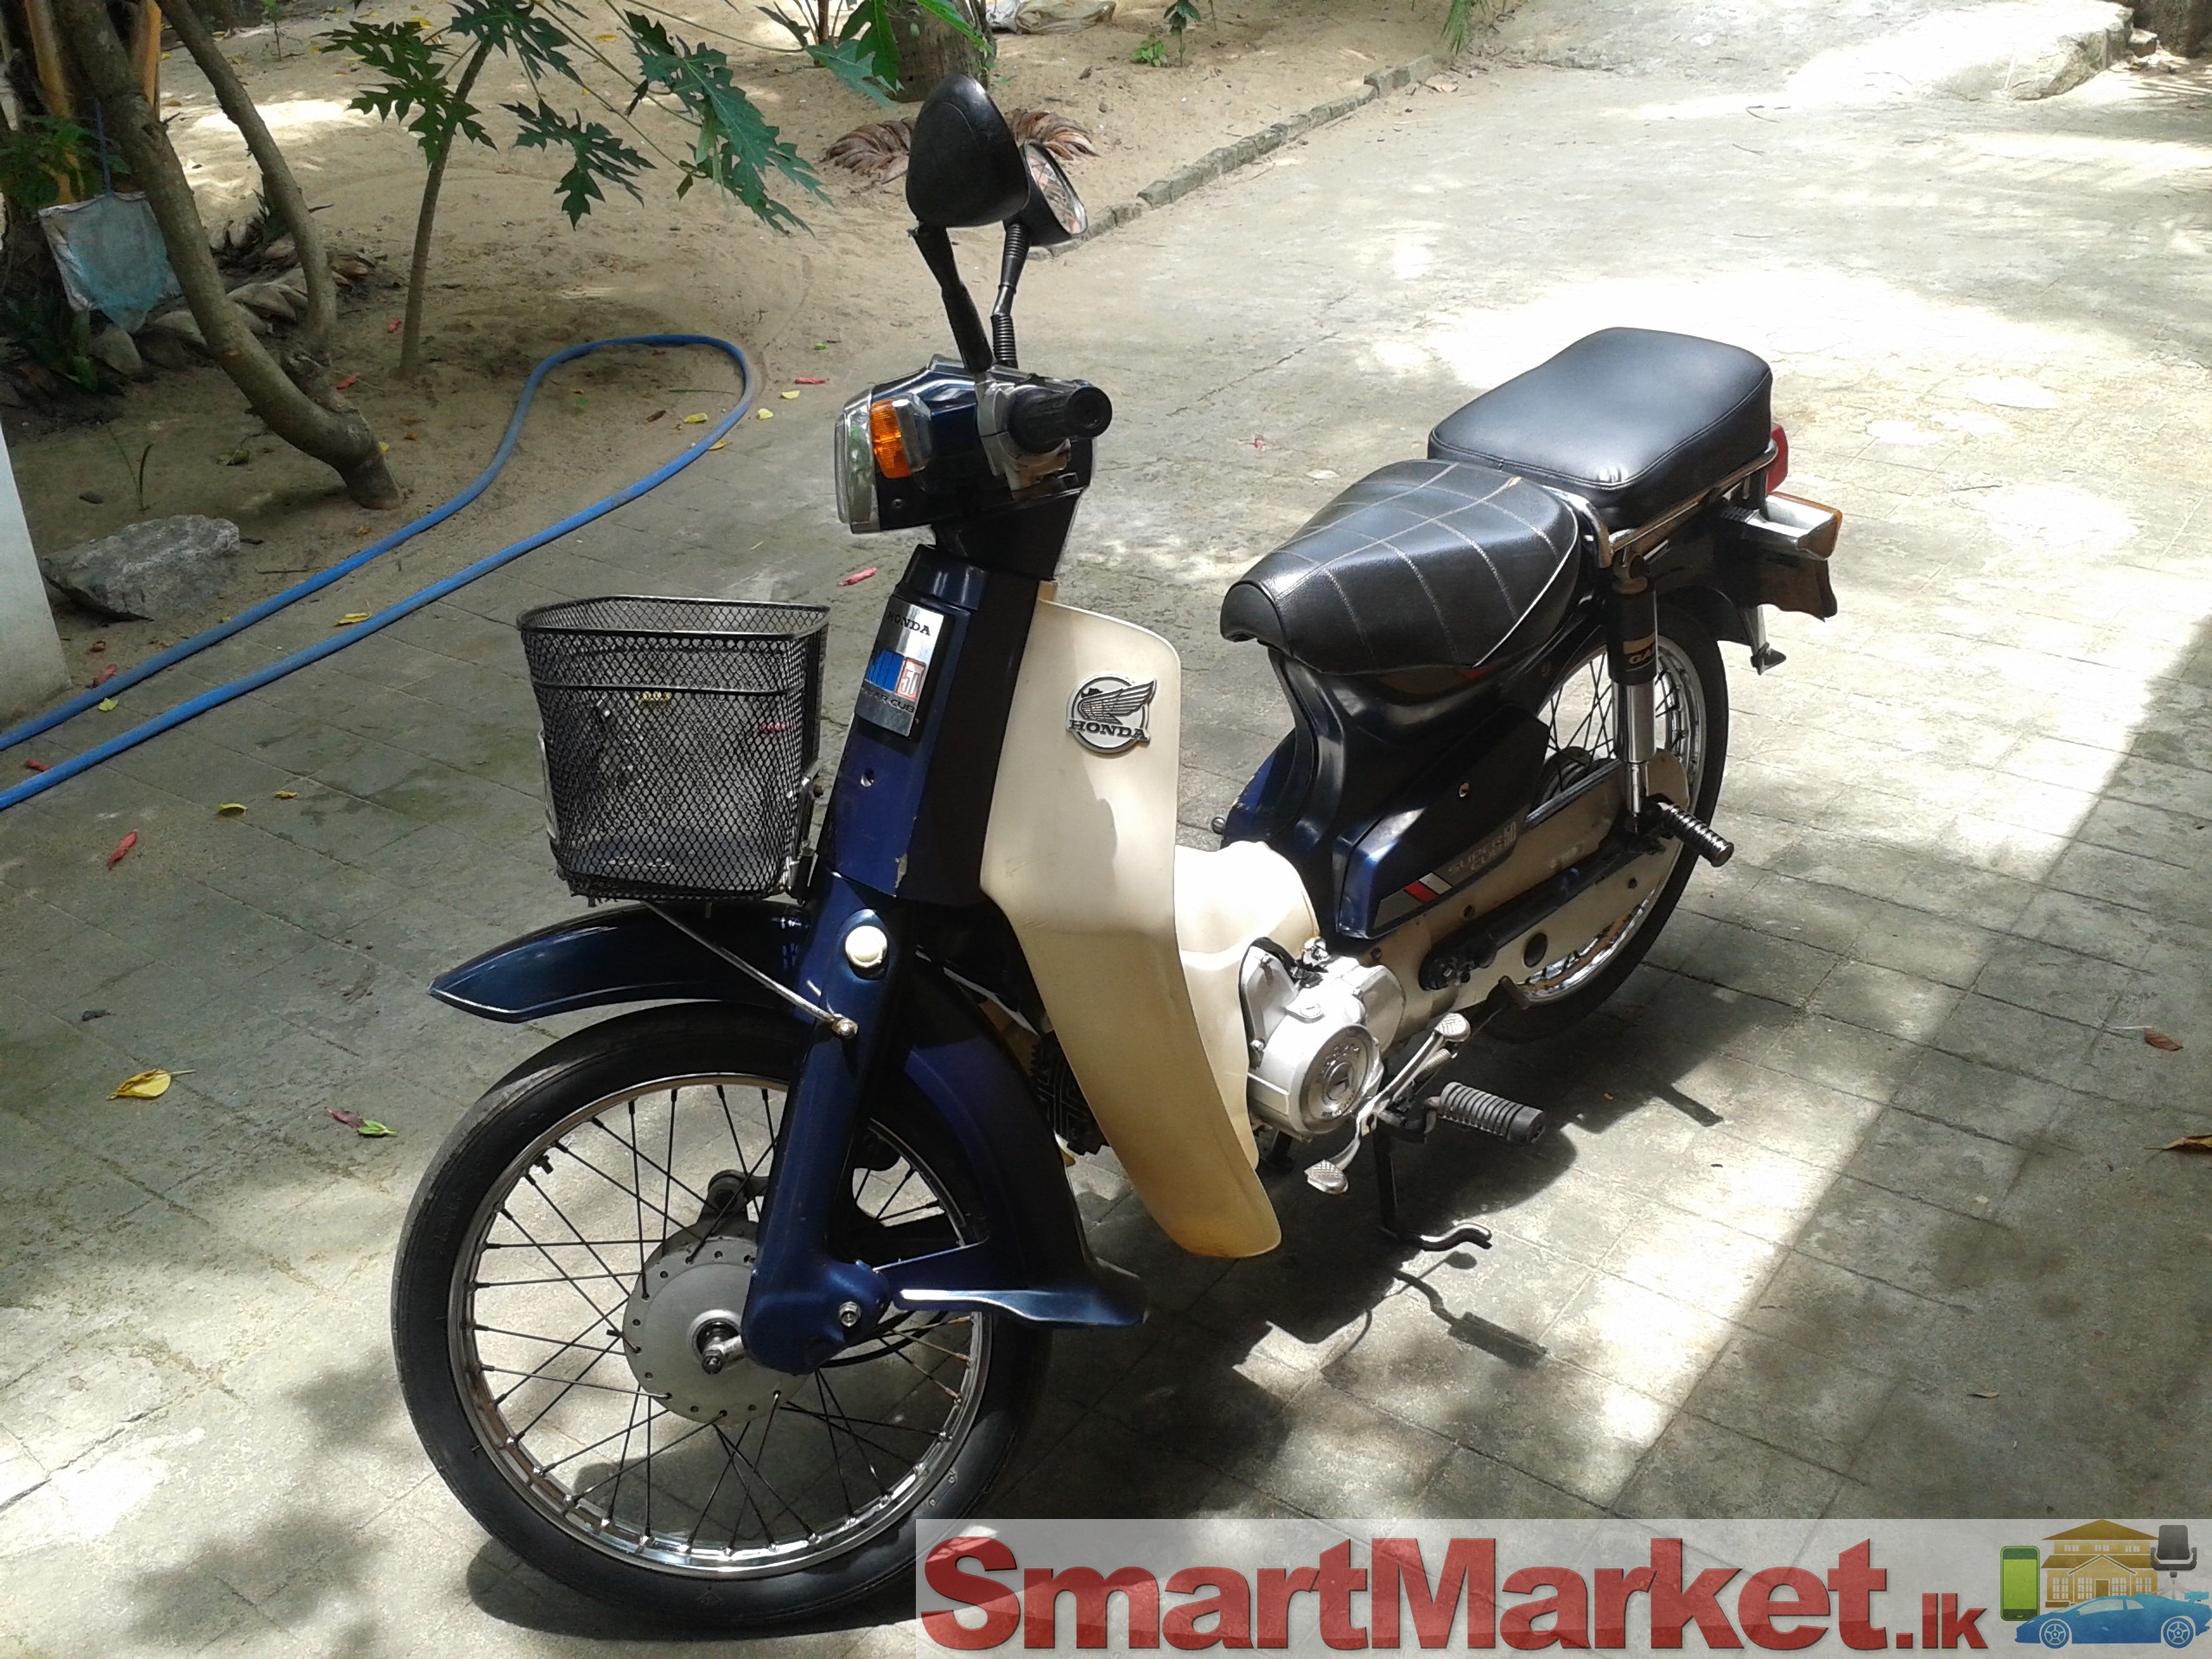 Honda Super Cub C50 For Sale In Batticaloa Smartmarket Lk